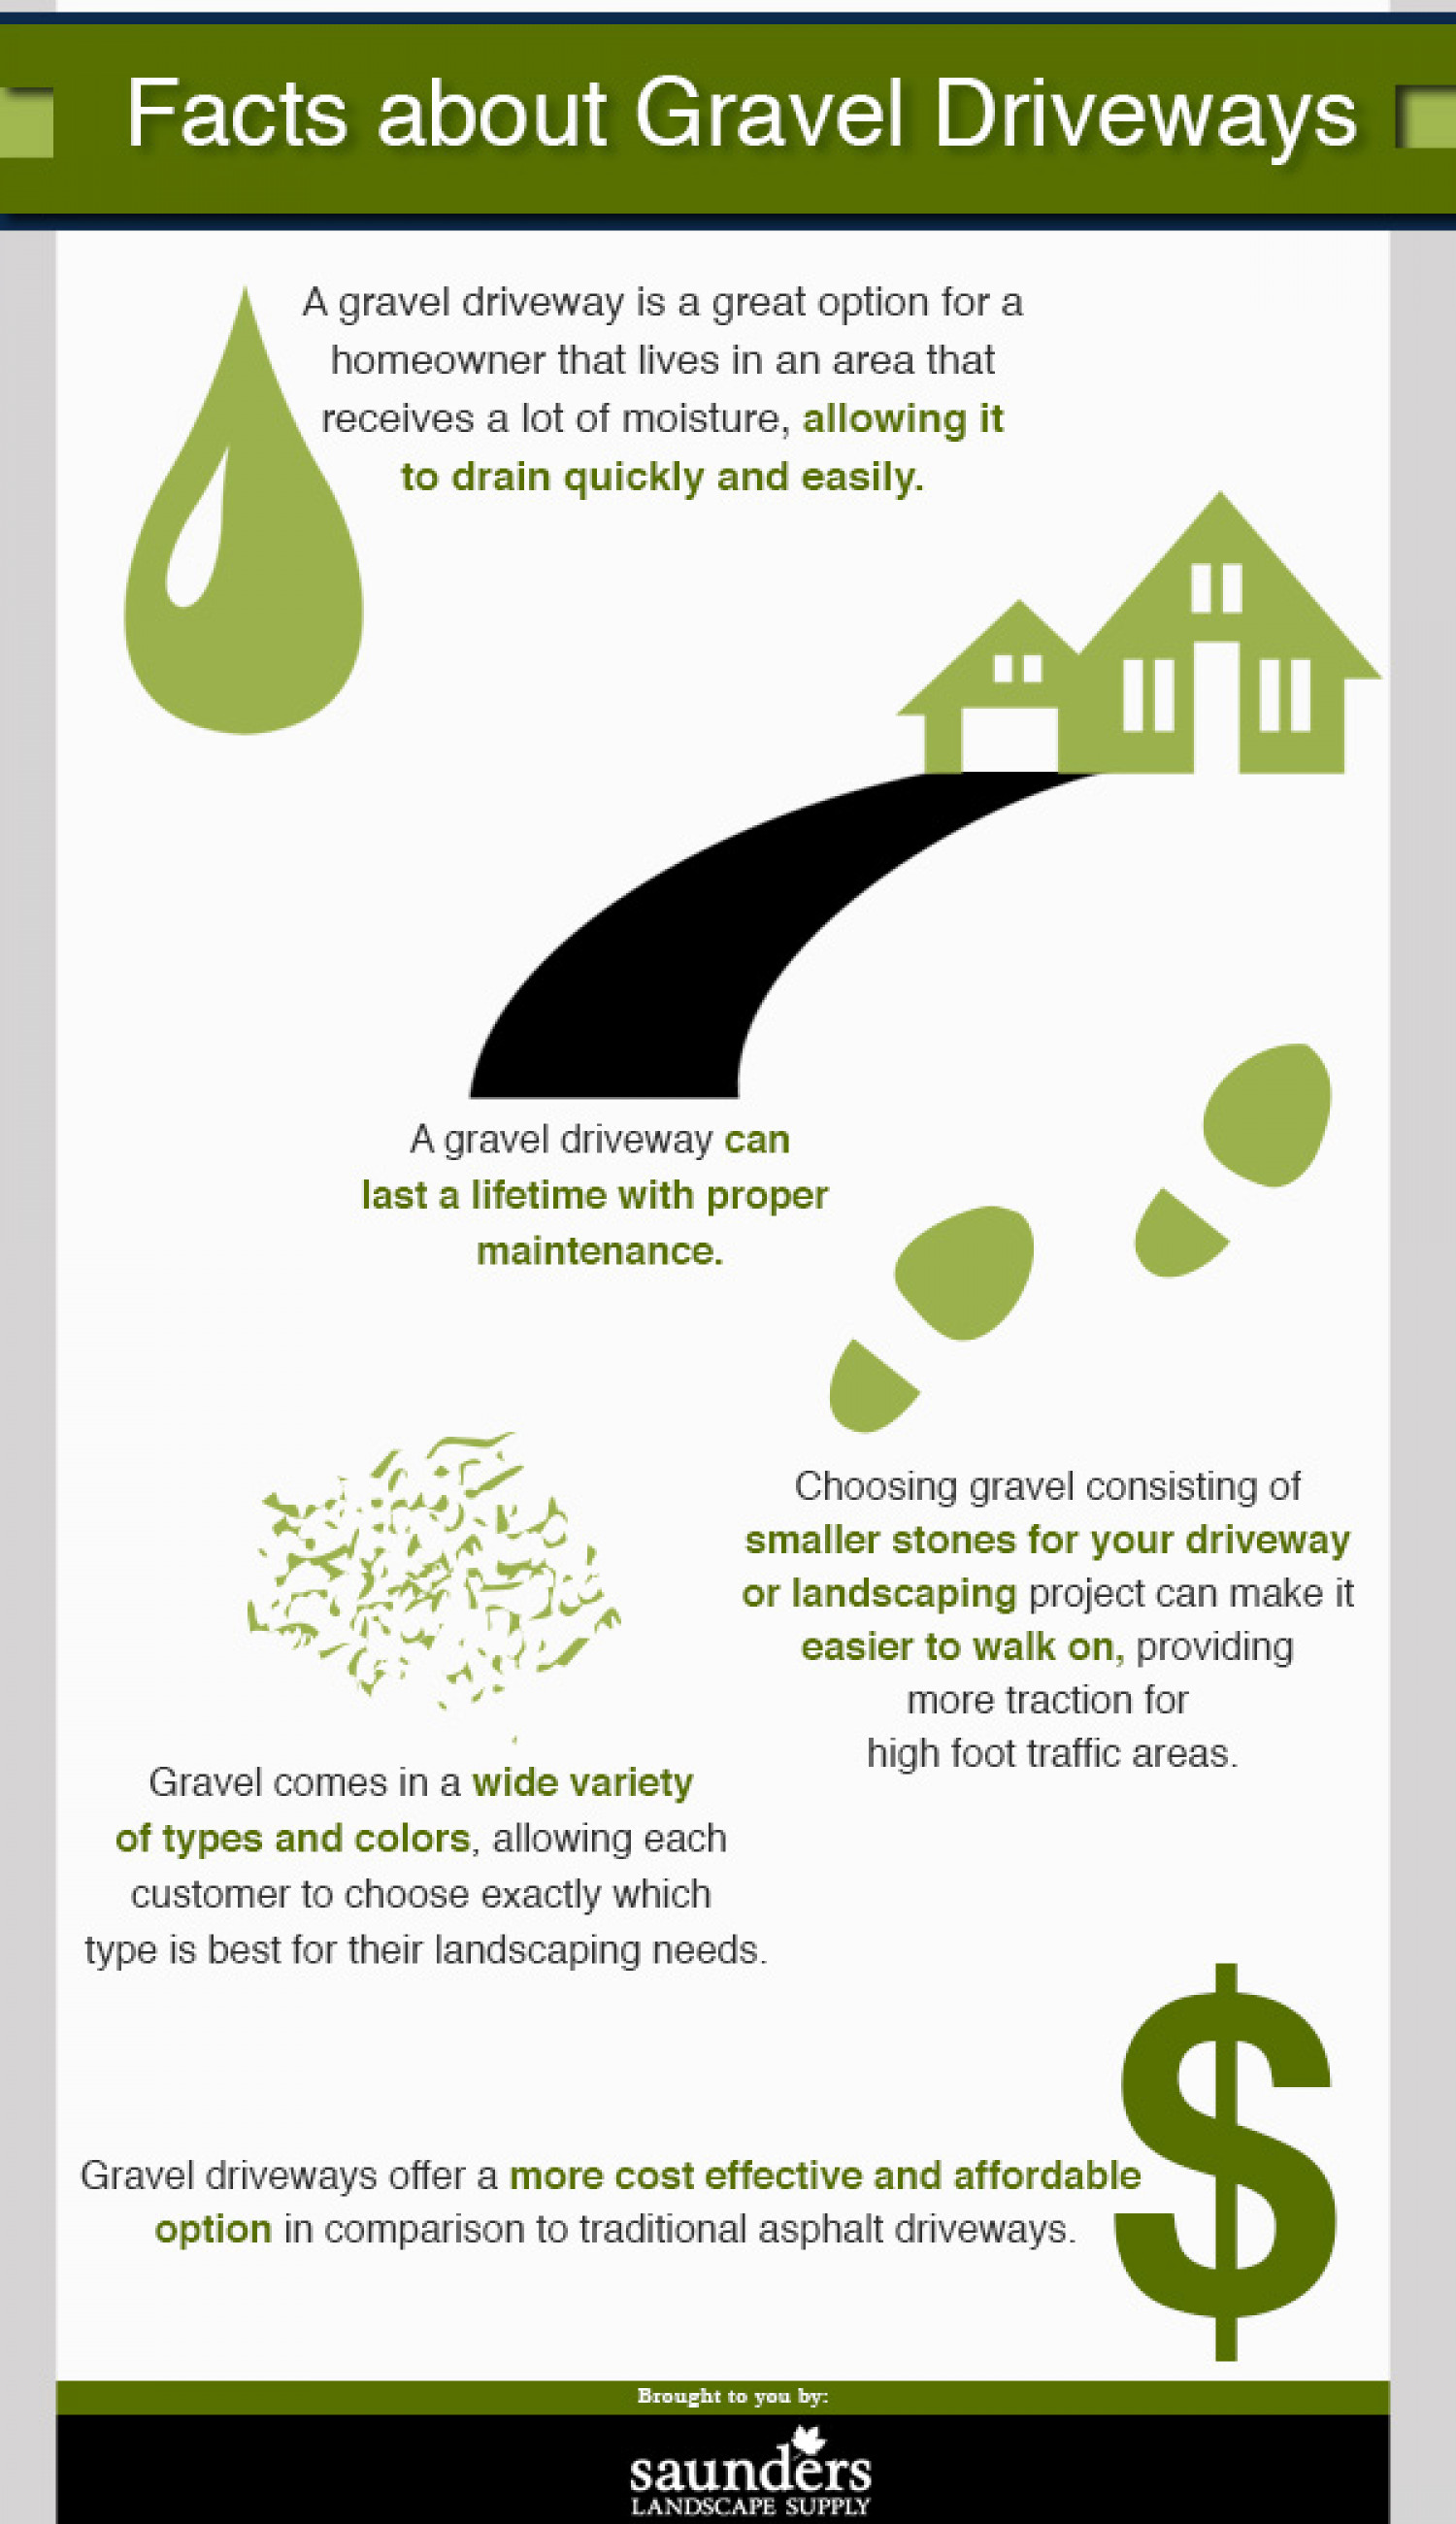 Facts About Gravel Driveways Infographic